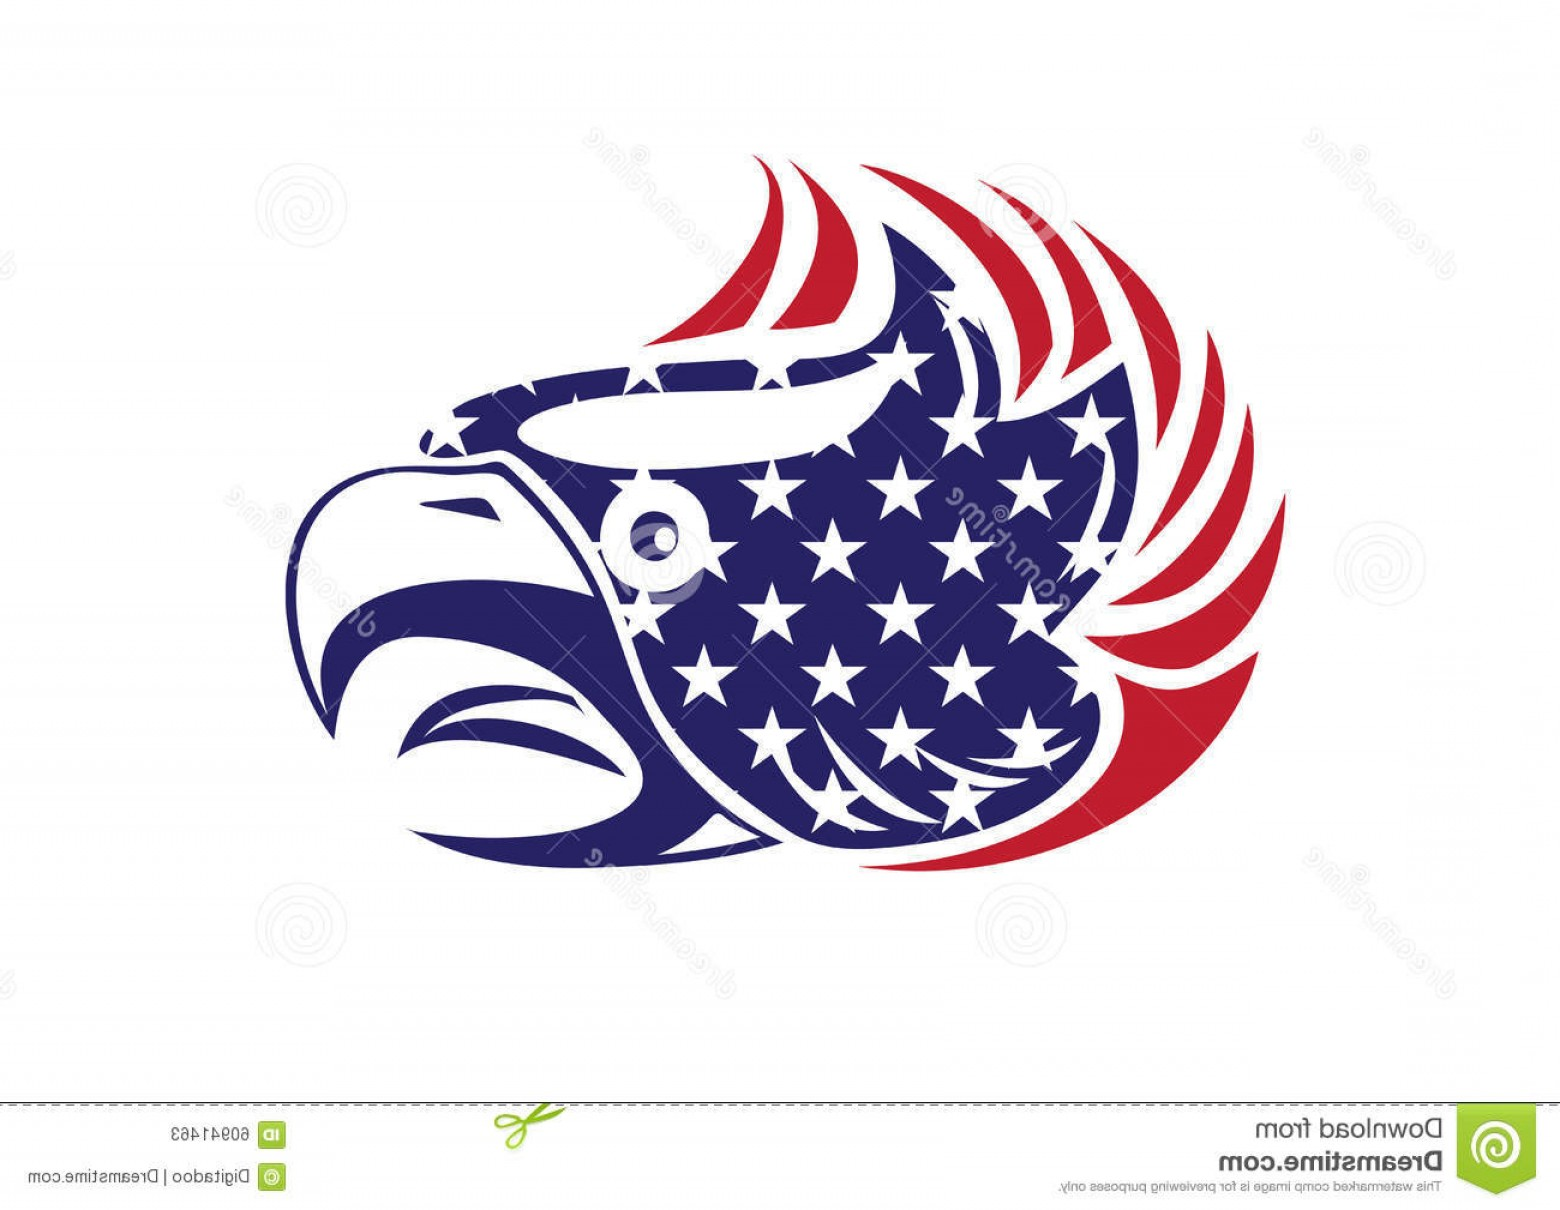 Patriotic Bald Eagle Vector: Stock Illustration Usa Flag Patriotic Eagle Bald Hawk Head Vector Logo Object Image